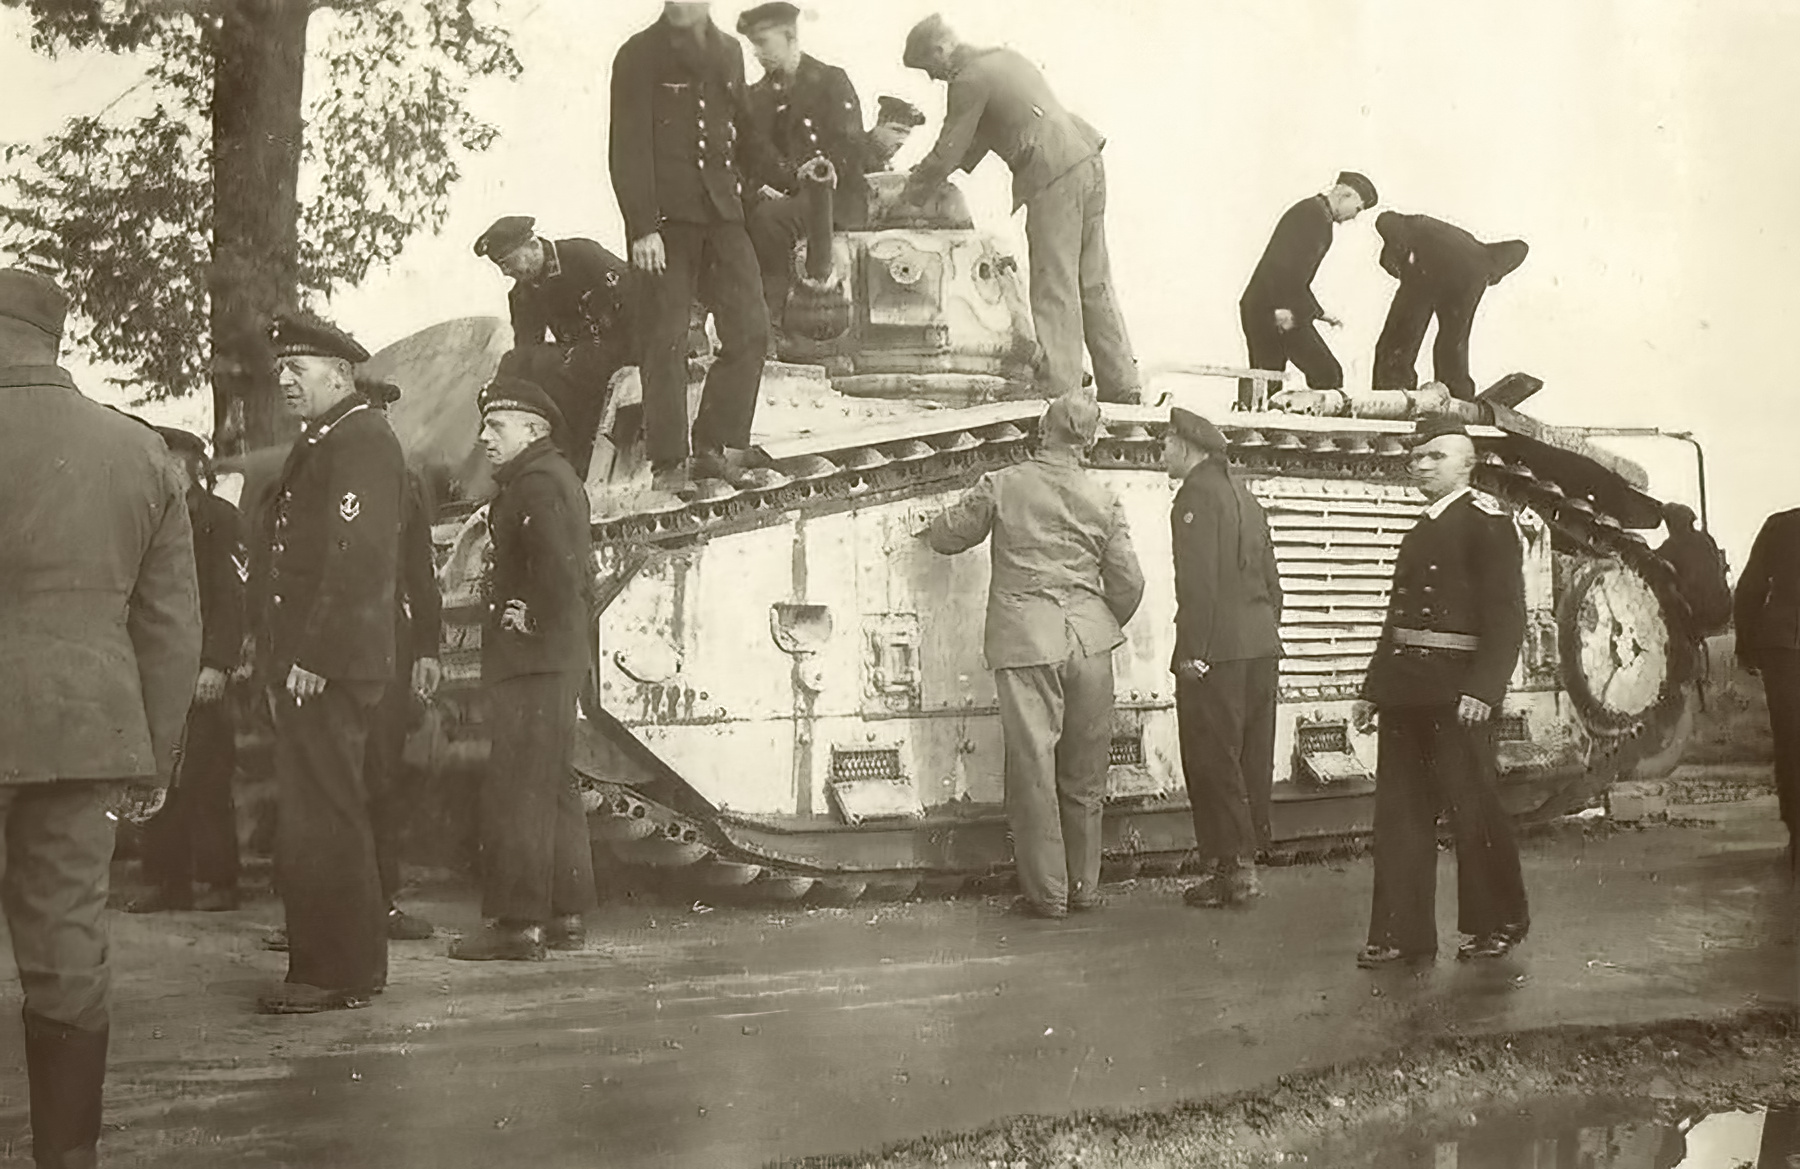 French Army Renault Char B1bis captured during the battle of France 1940 ebay 01